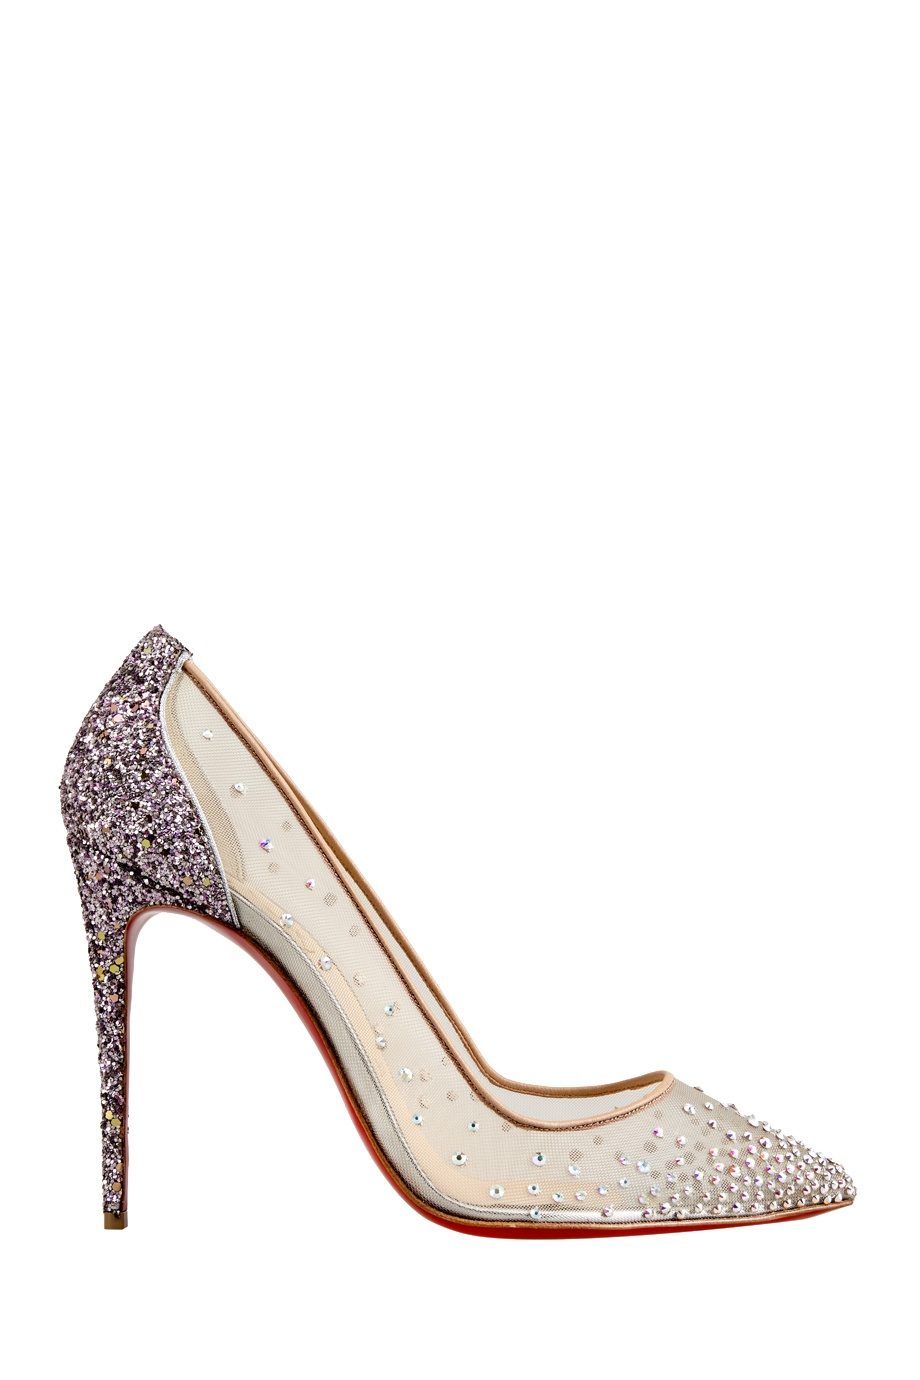 Туфли Follies Strass 100 Christian Louboutin (фото)